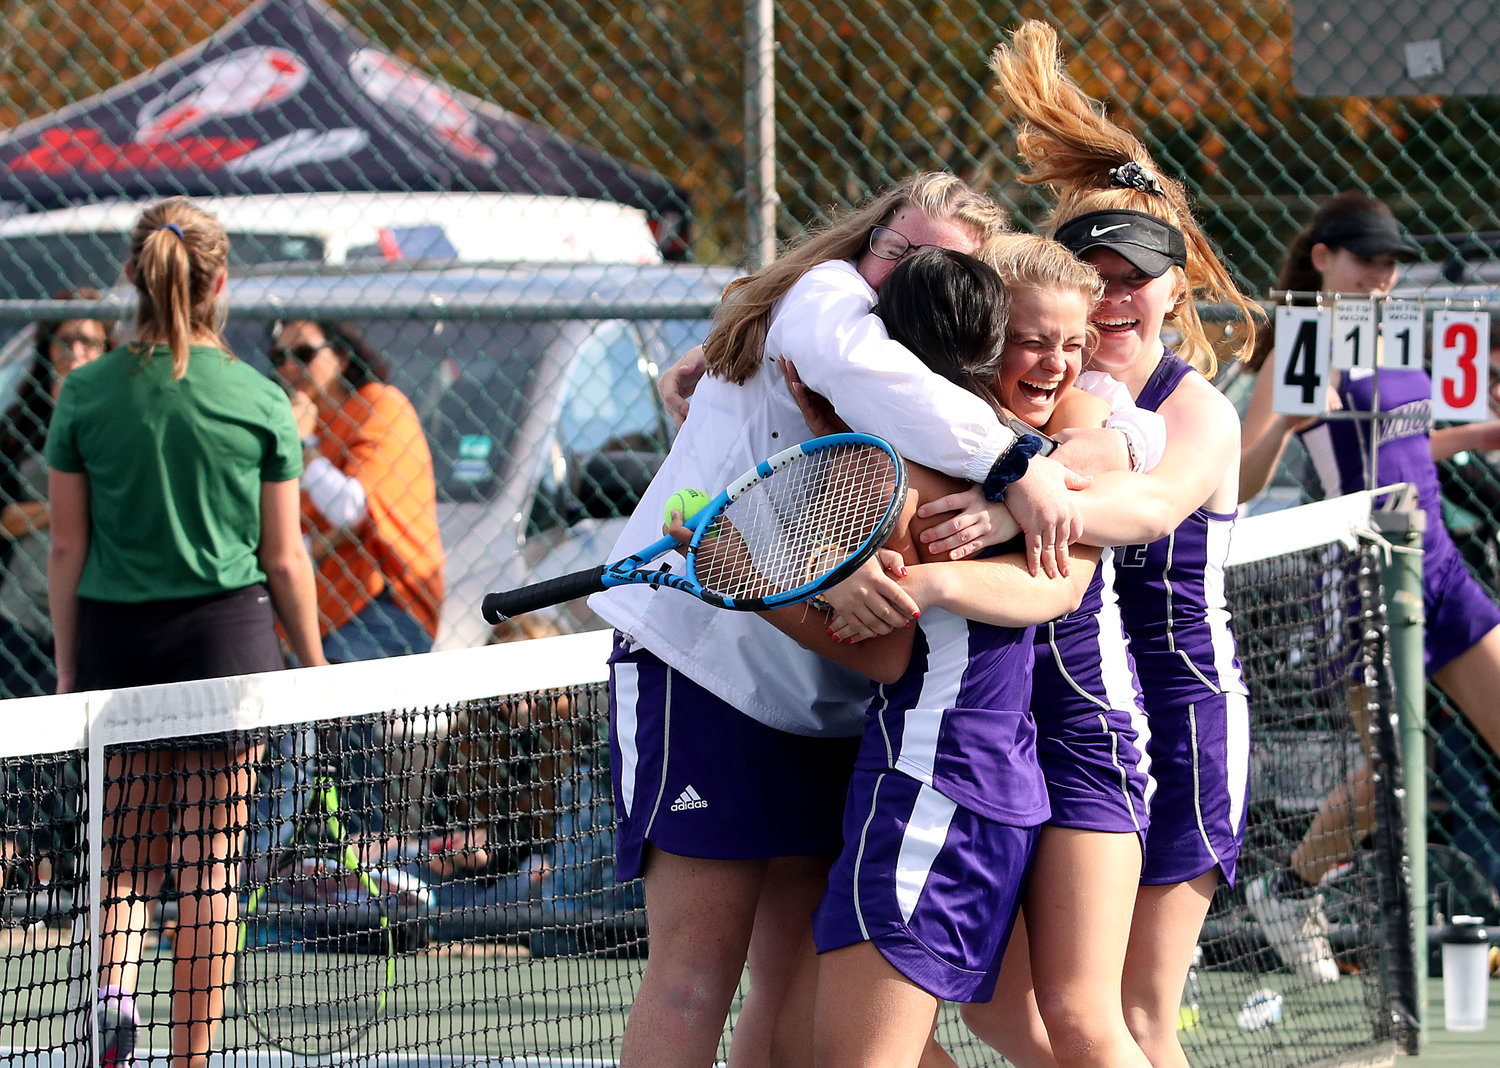 Jilly Parker (center), Meg Dolan (left) and other teammates swarm and hug No. 4 singles player Eva White after she clinched the State championship.